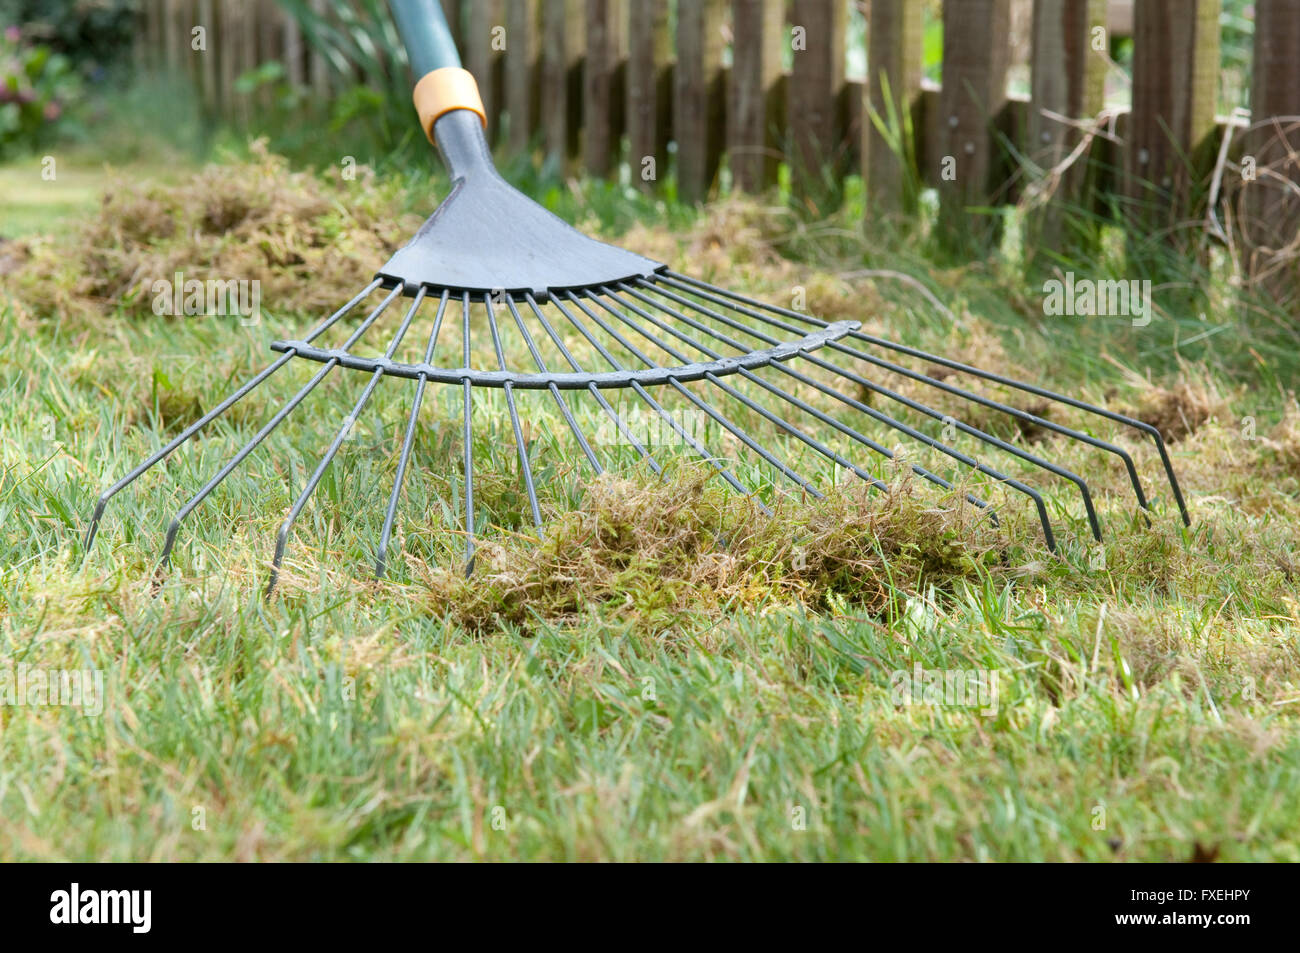 Scarifying garden lawn to remove moss using leaf rake - Stock Image